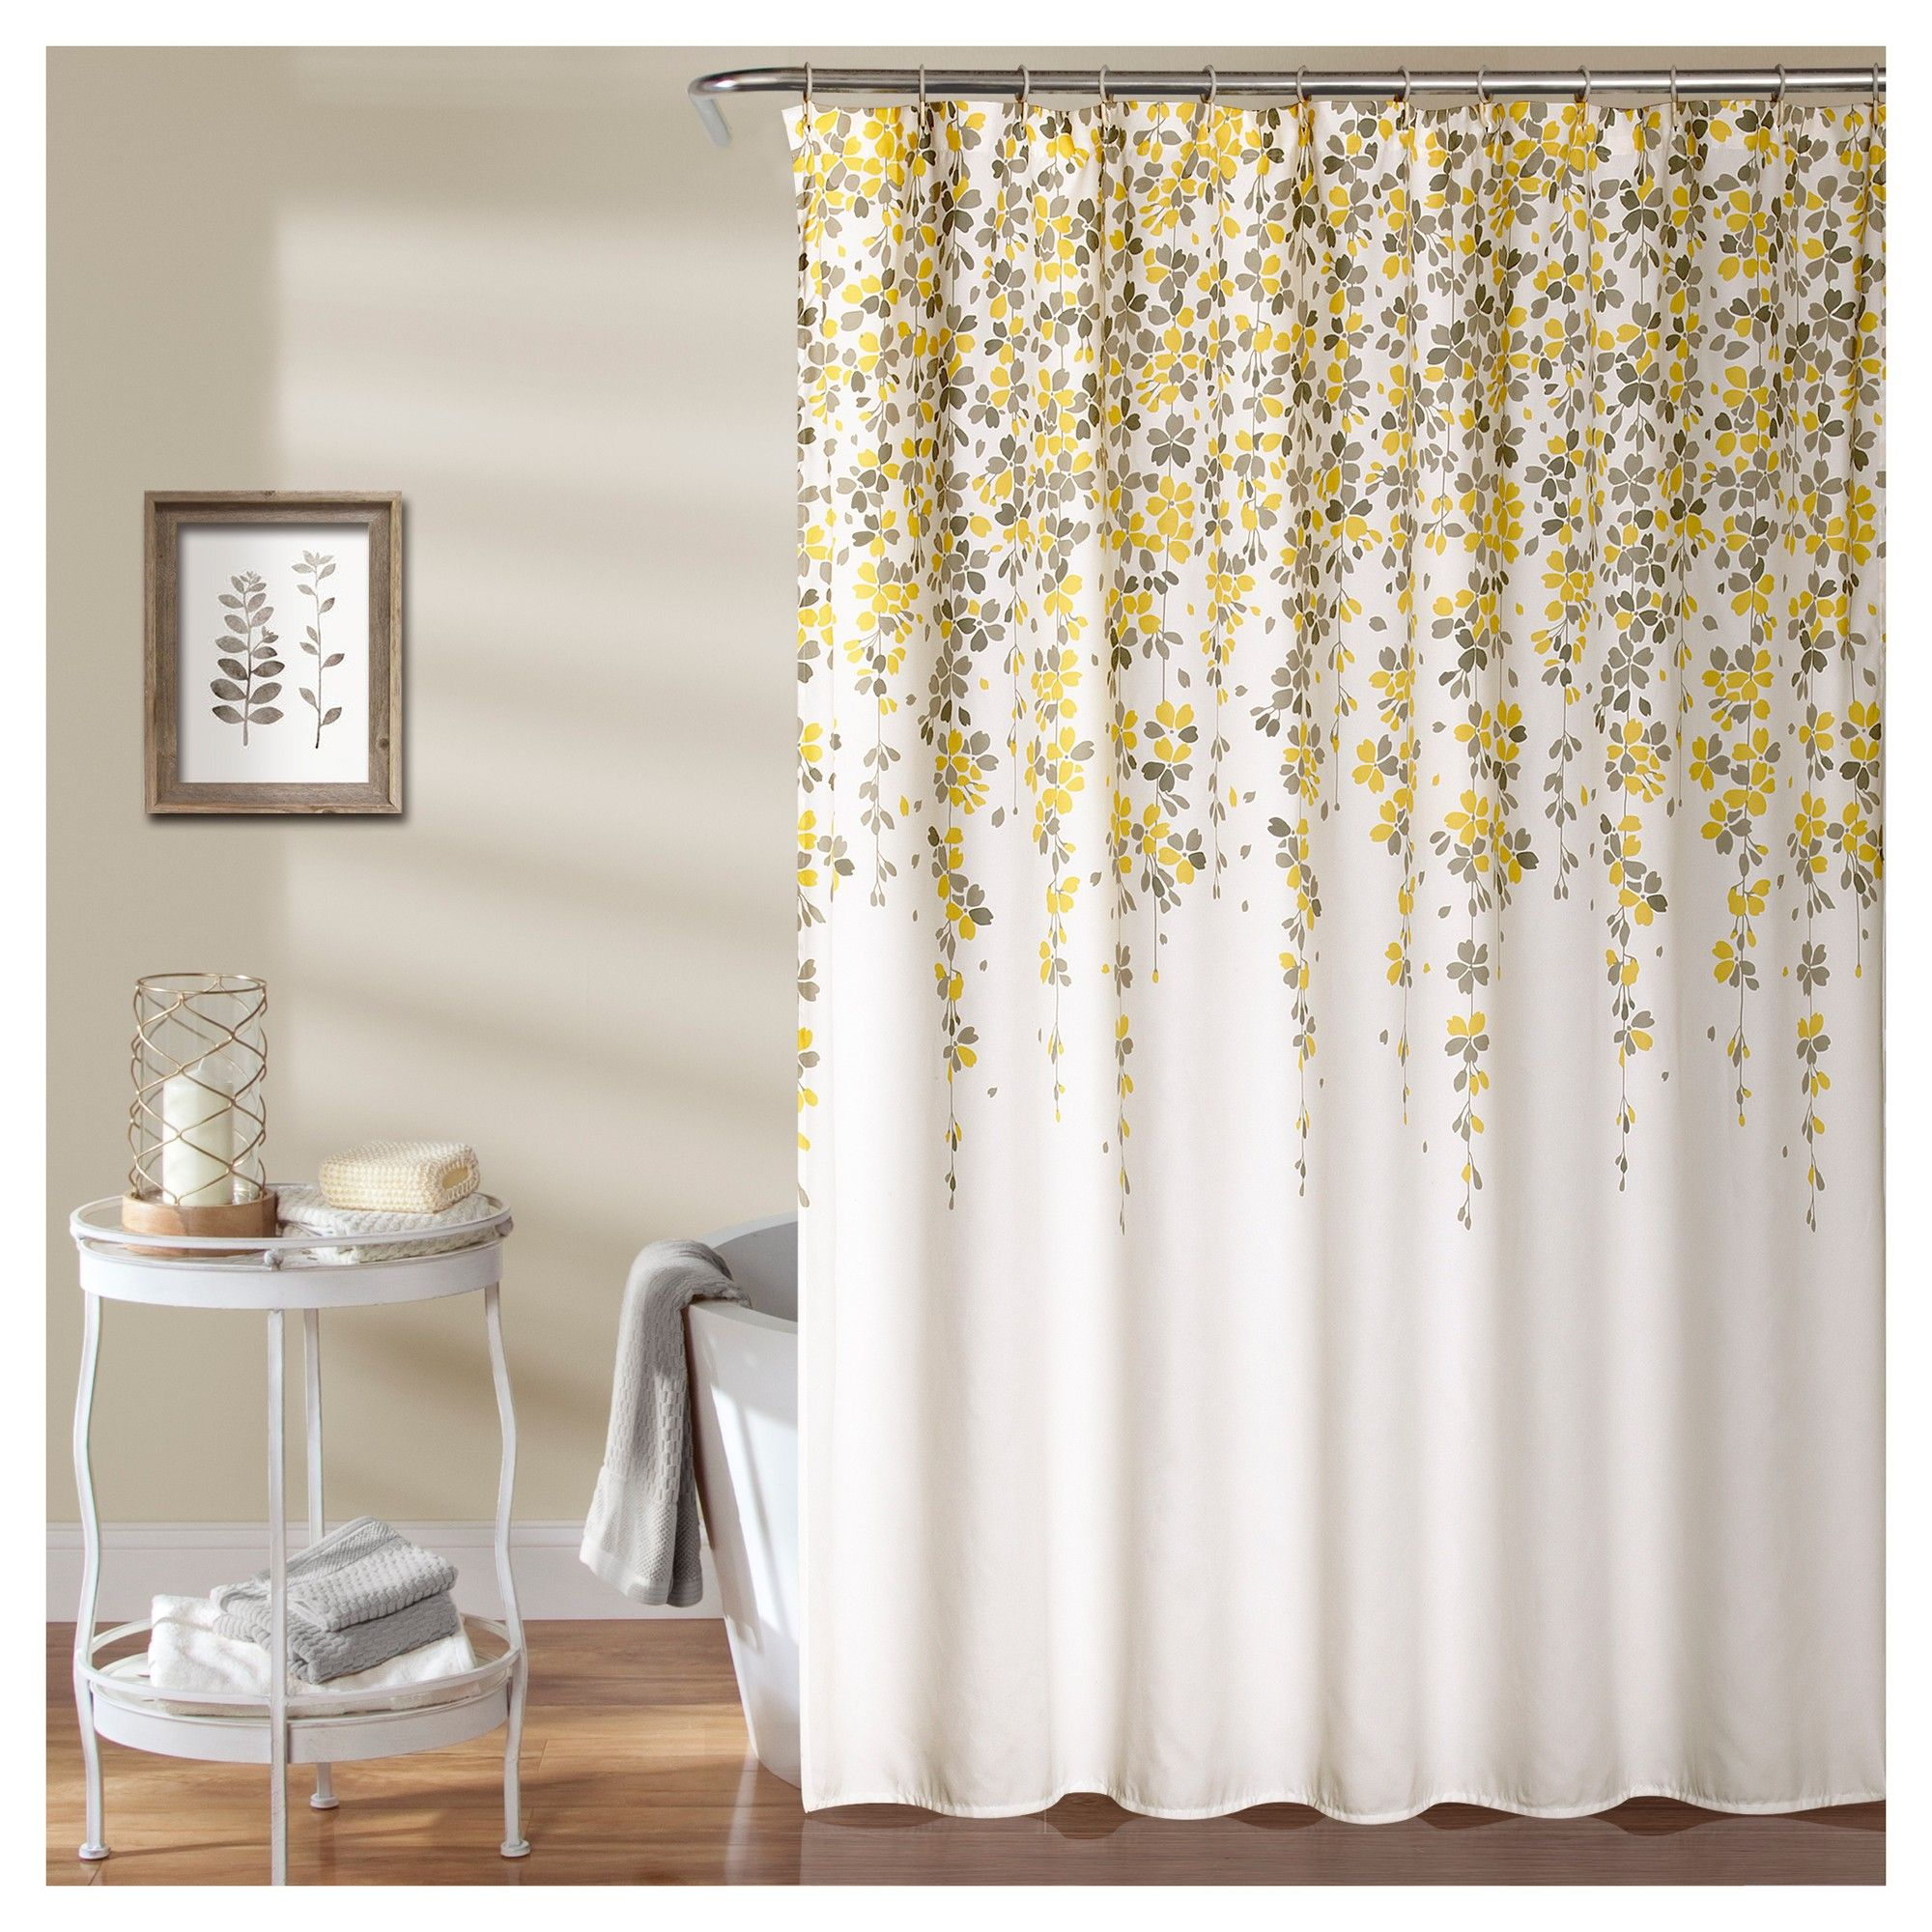 Weeping Flower Shower Curtain Yellow Gray Lush Decor Floral